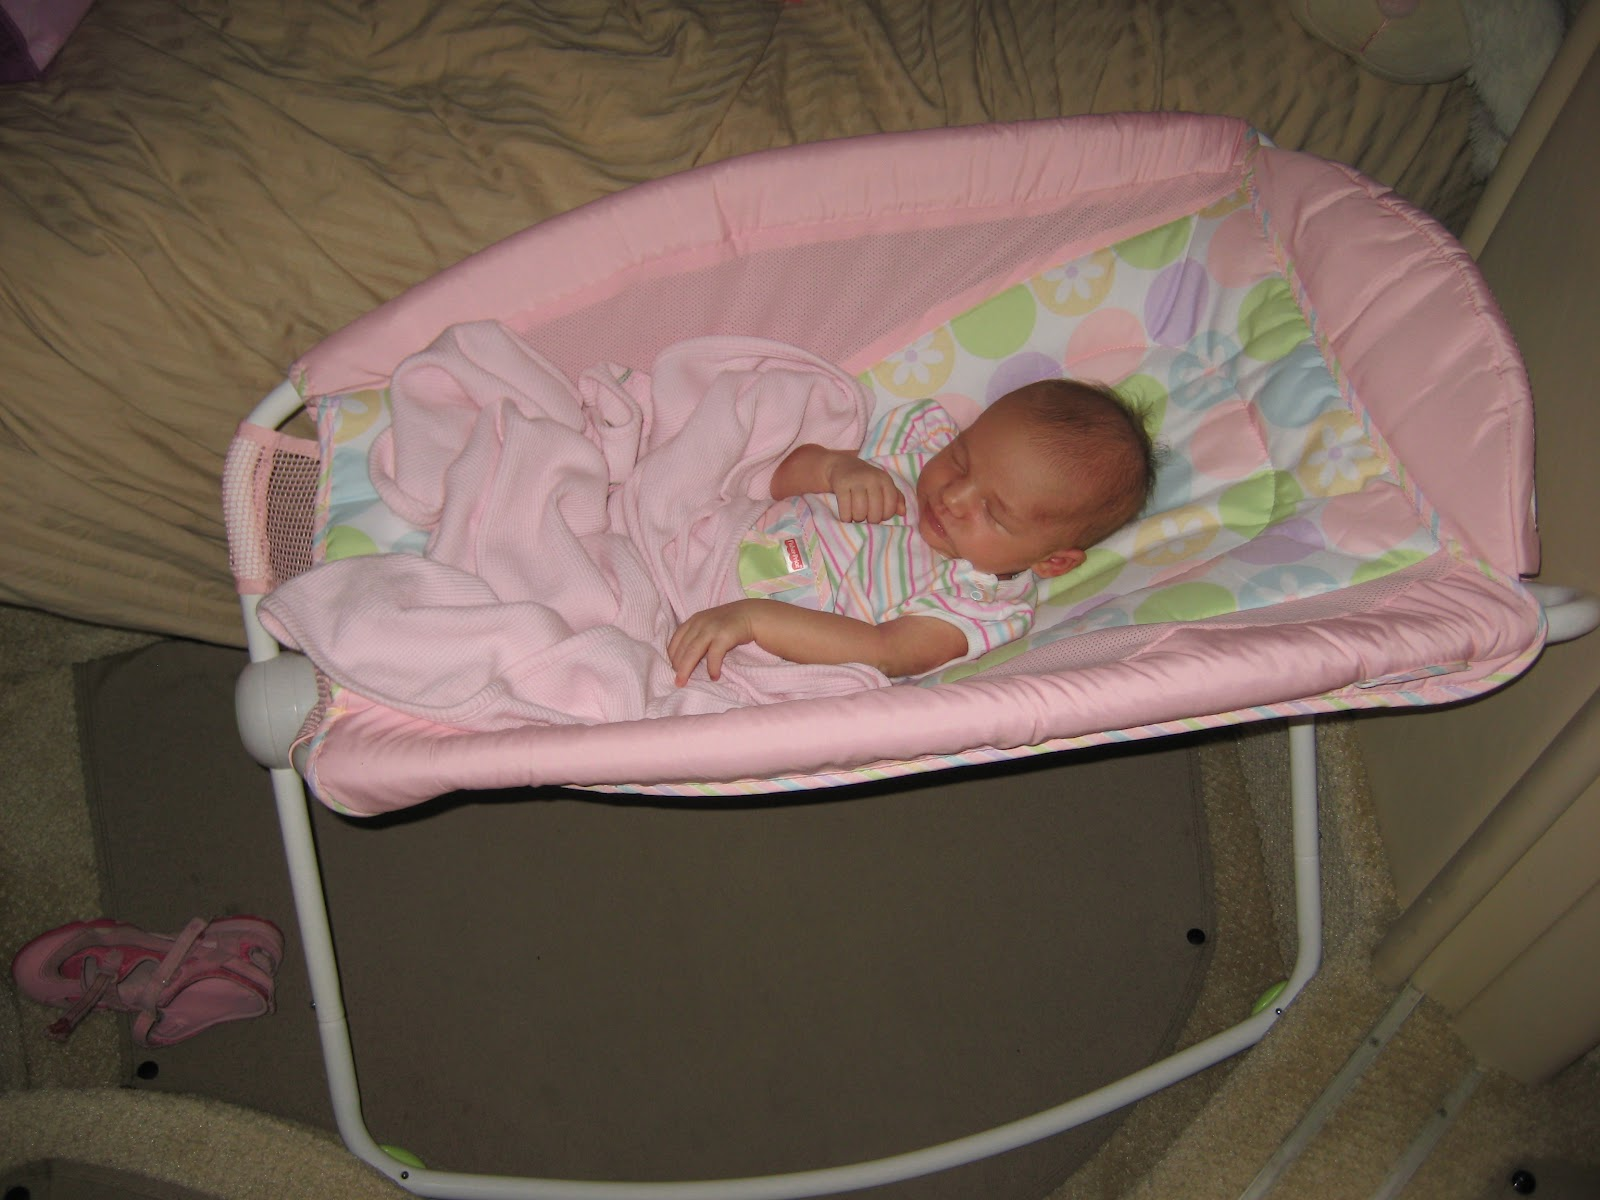 Baby Rocker Bed Bed Options For A Newborn Infant Or Baby Sleeping On Board